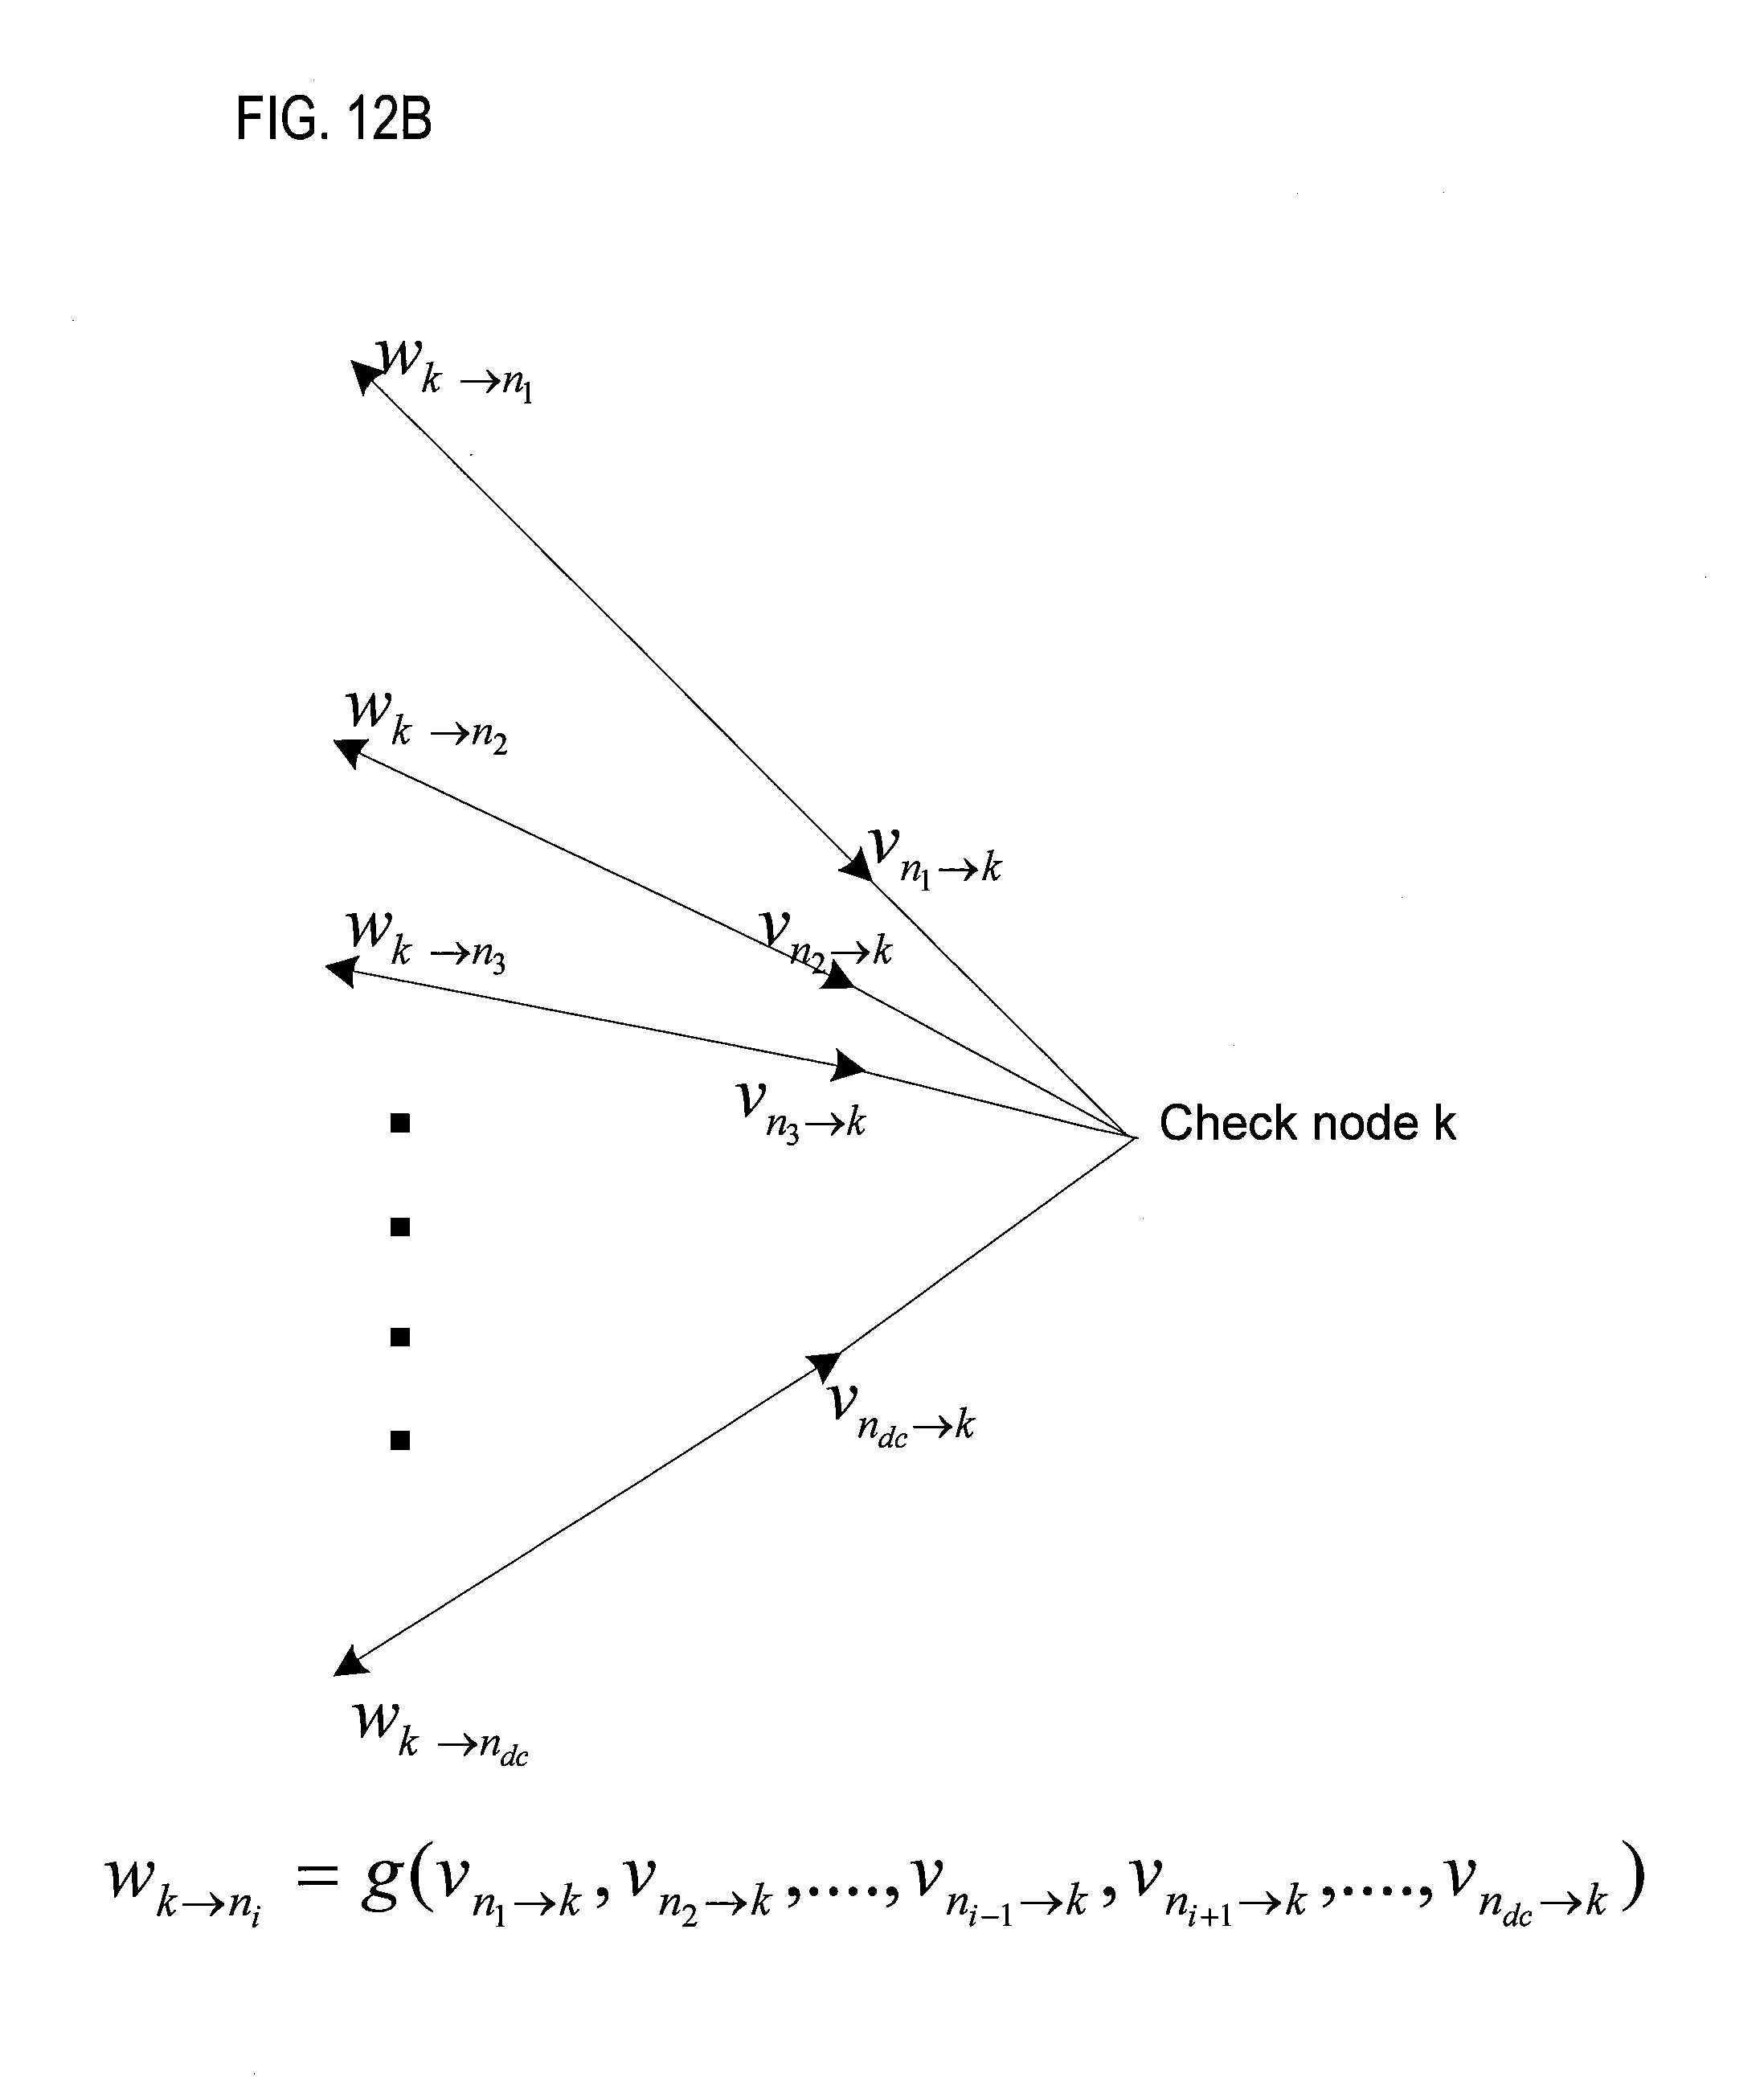 constellation diagram of 16 psk napa ford solenoid patent us20100107032 bit labeling for amplitude phase